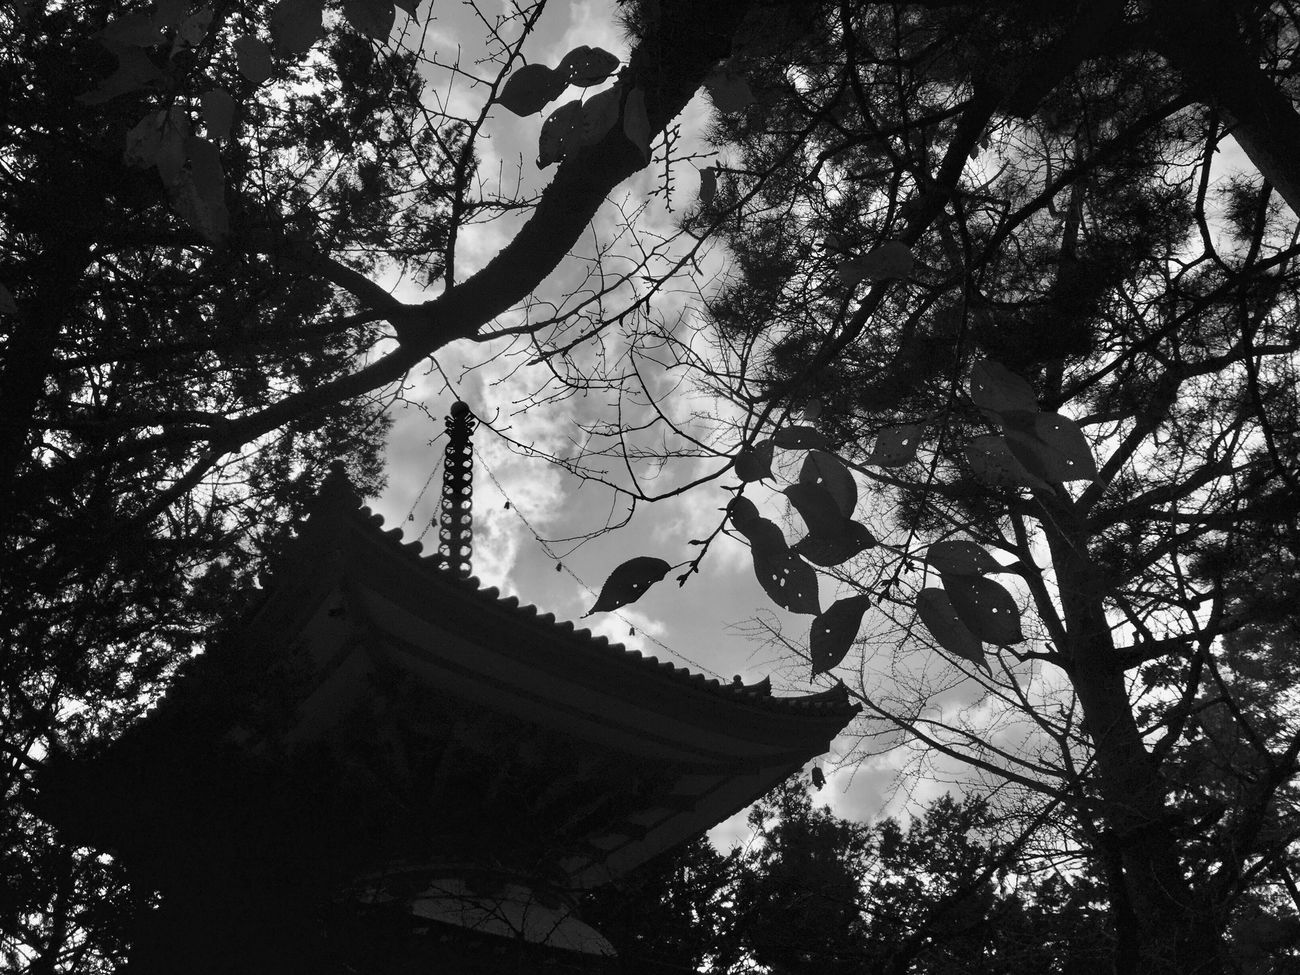 Silhouette Silhouettes Tree Nature Sky Built Structure Architecture Outdoors Building Exterior Day Street Photography Tree Beauty In Nature Leaf Nature Landscape View Sky And Clouds Black & White Black And White Monochrome Blackandwhite Leaves